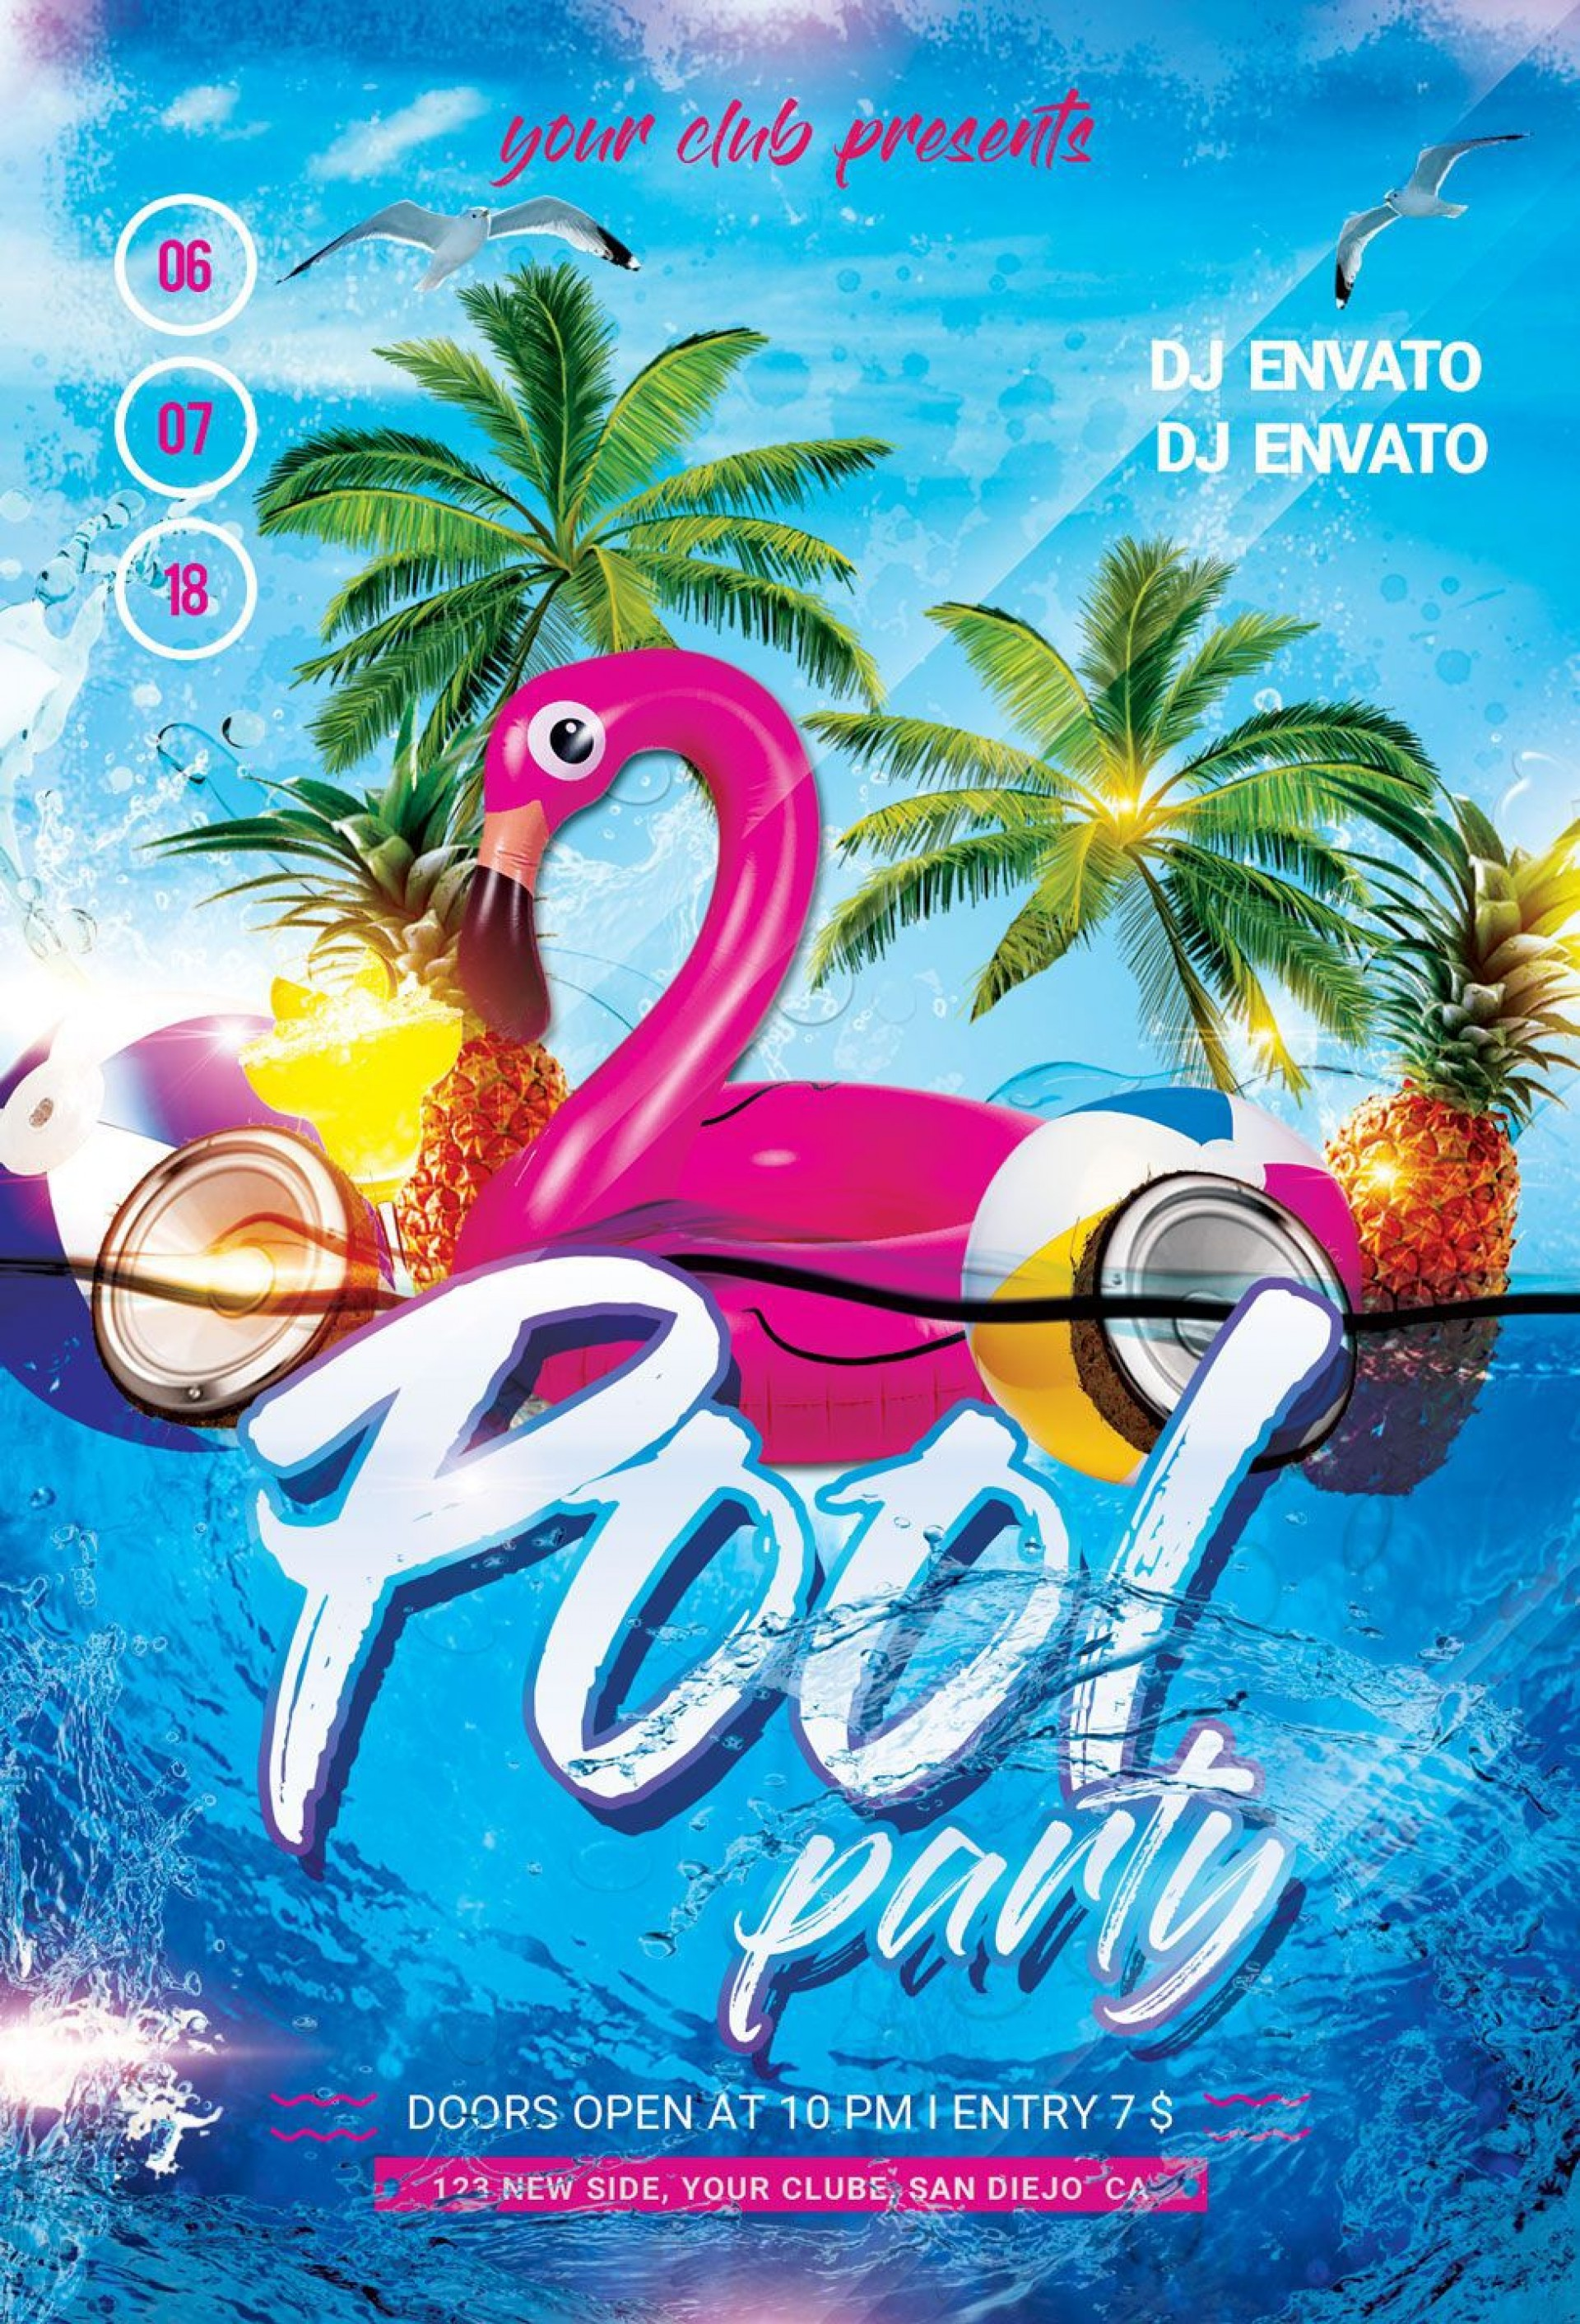 001 Marvelou Pool Party Flyer Template Free Image  Photoshop Psd1920